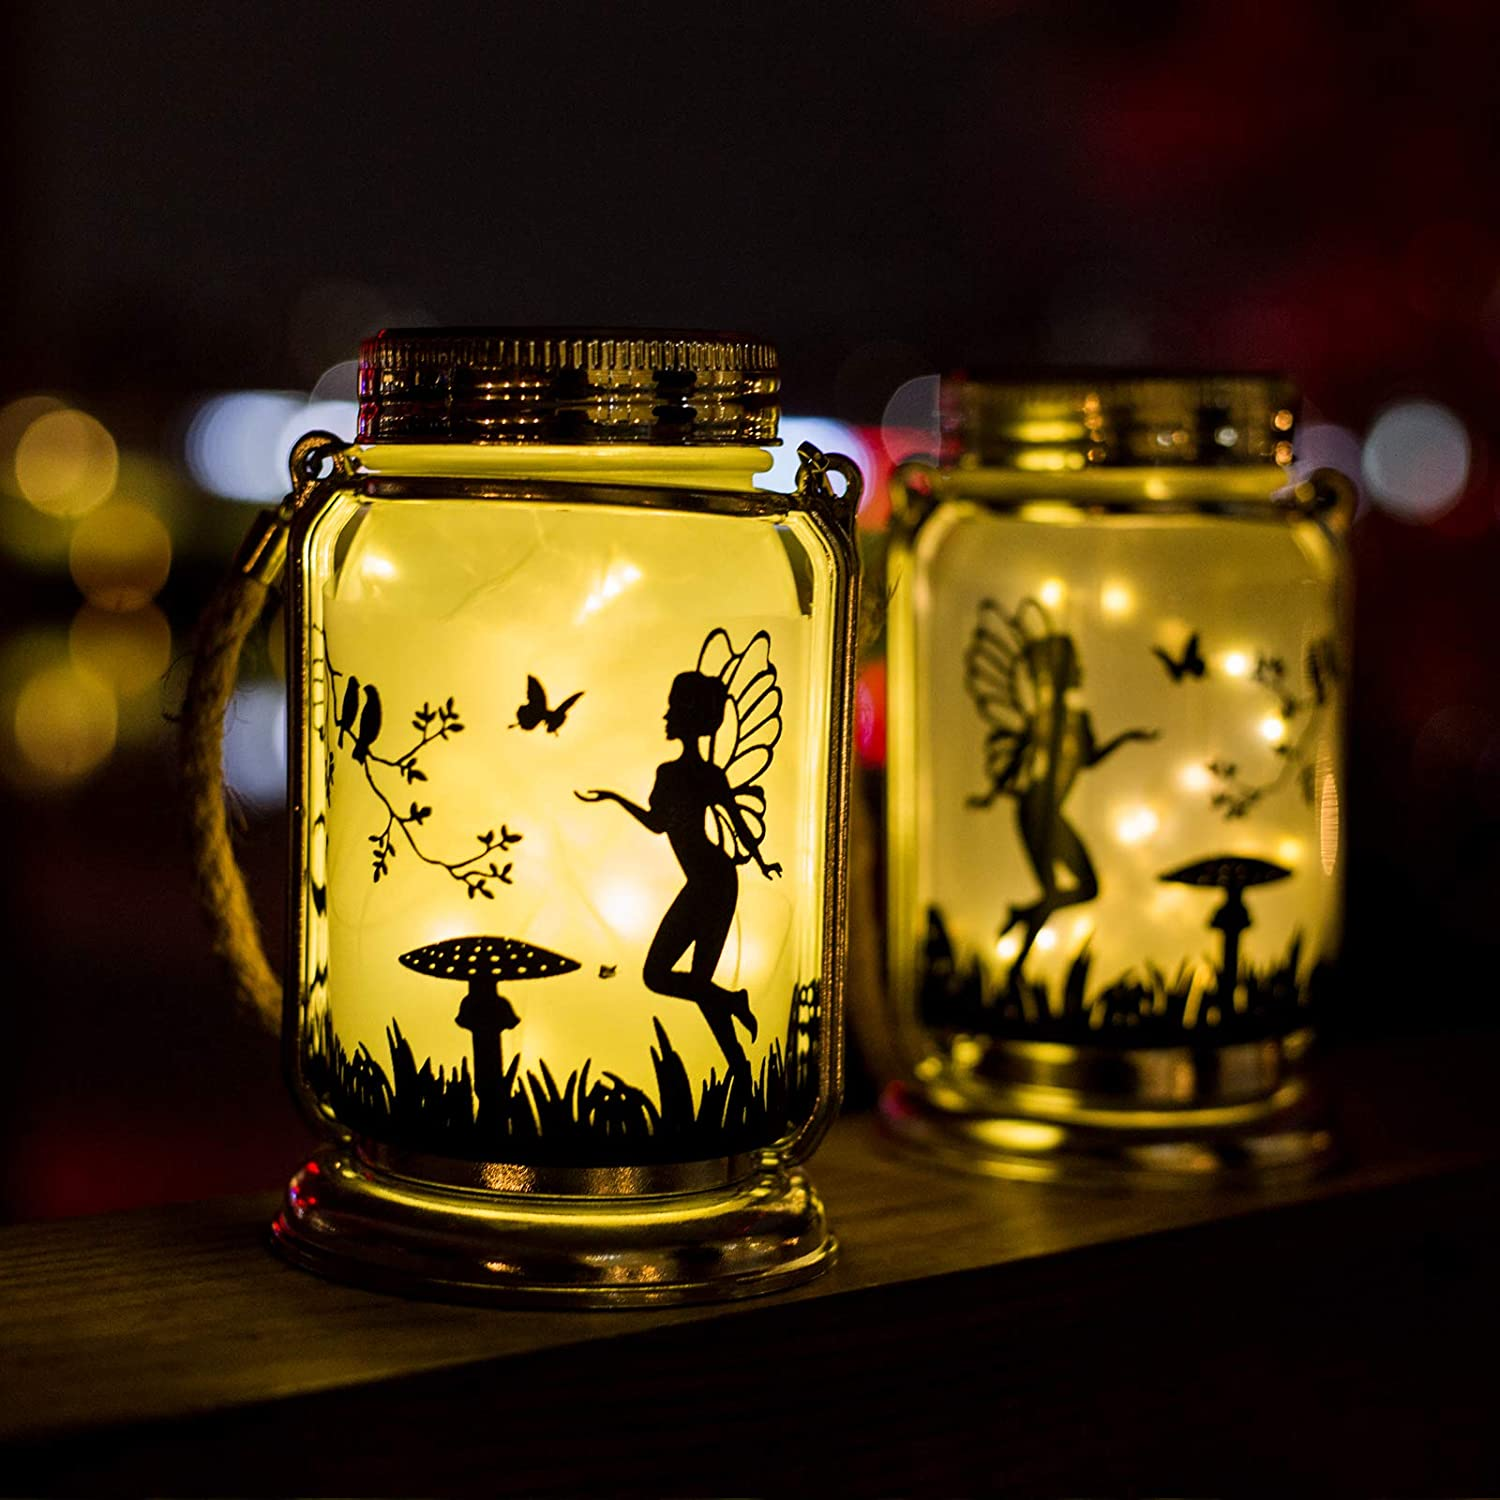 ANGMLN Solar Fairy Lantern Decor Night Light- 2 Pack Outdoor Fairies Decorations Gifts Hanging Lamp Frosted Glass Jar with Stake for Yard Garden Patio Lawn (Warm White)